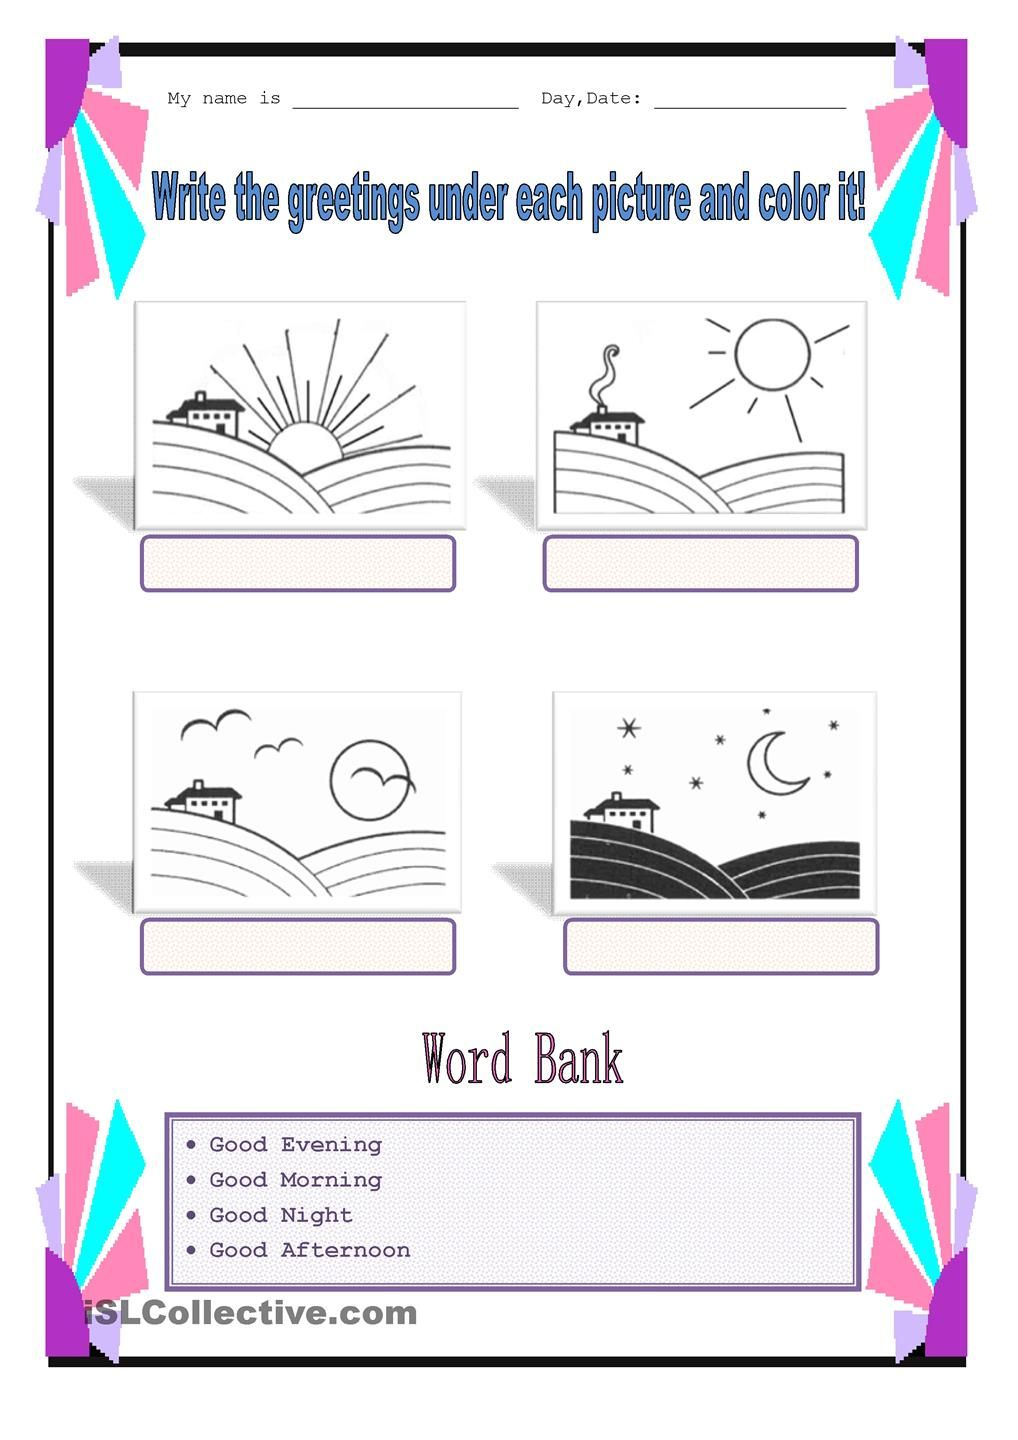 Worksheets Spanish Greetings And Goodbyes Worksheets parts of the day afag pinterest adverbs worksheets and worksheet free esl printable made by teachers